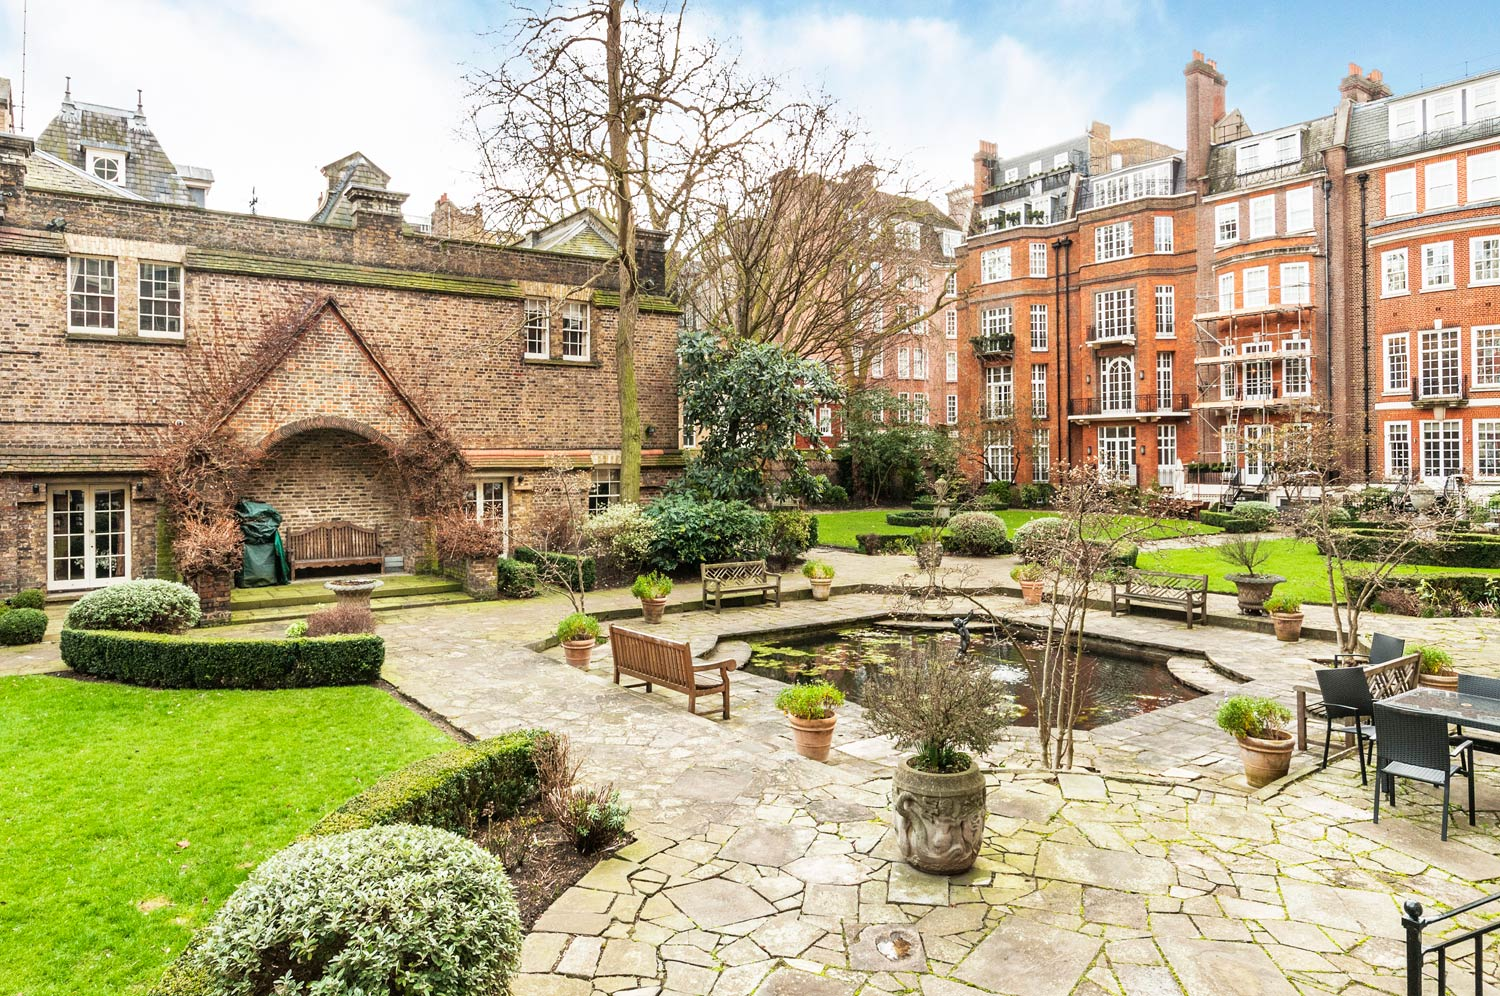 UK First-Time Property Buyers Born Today Face Daunting Task